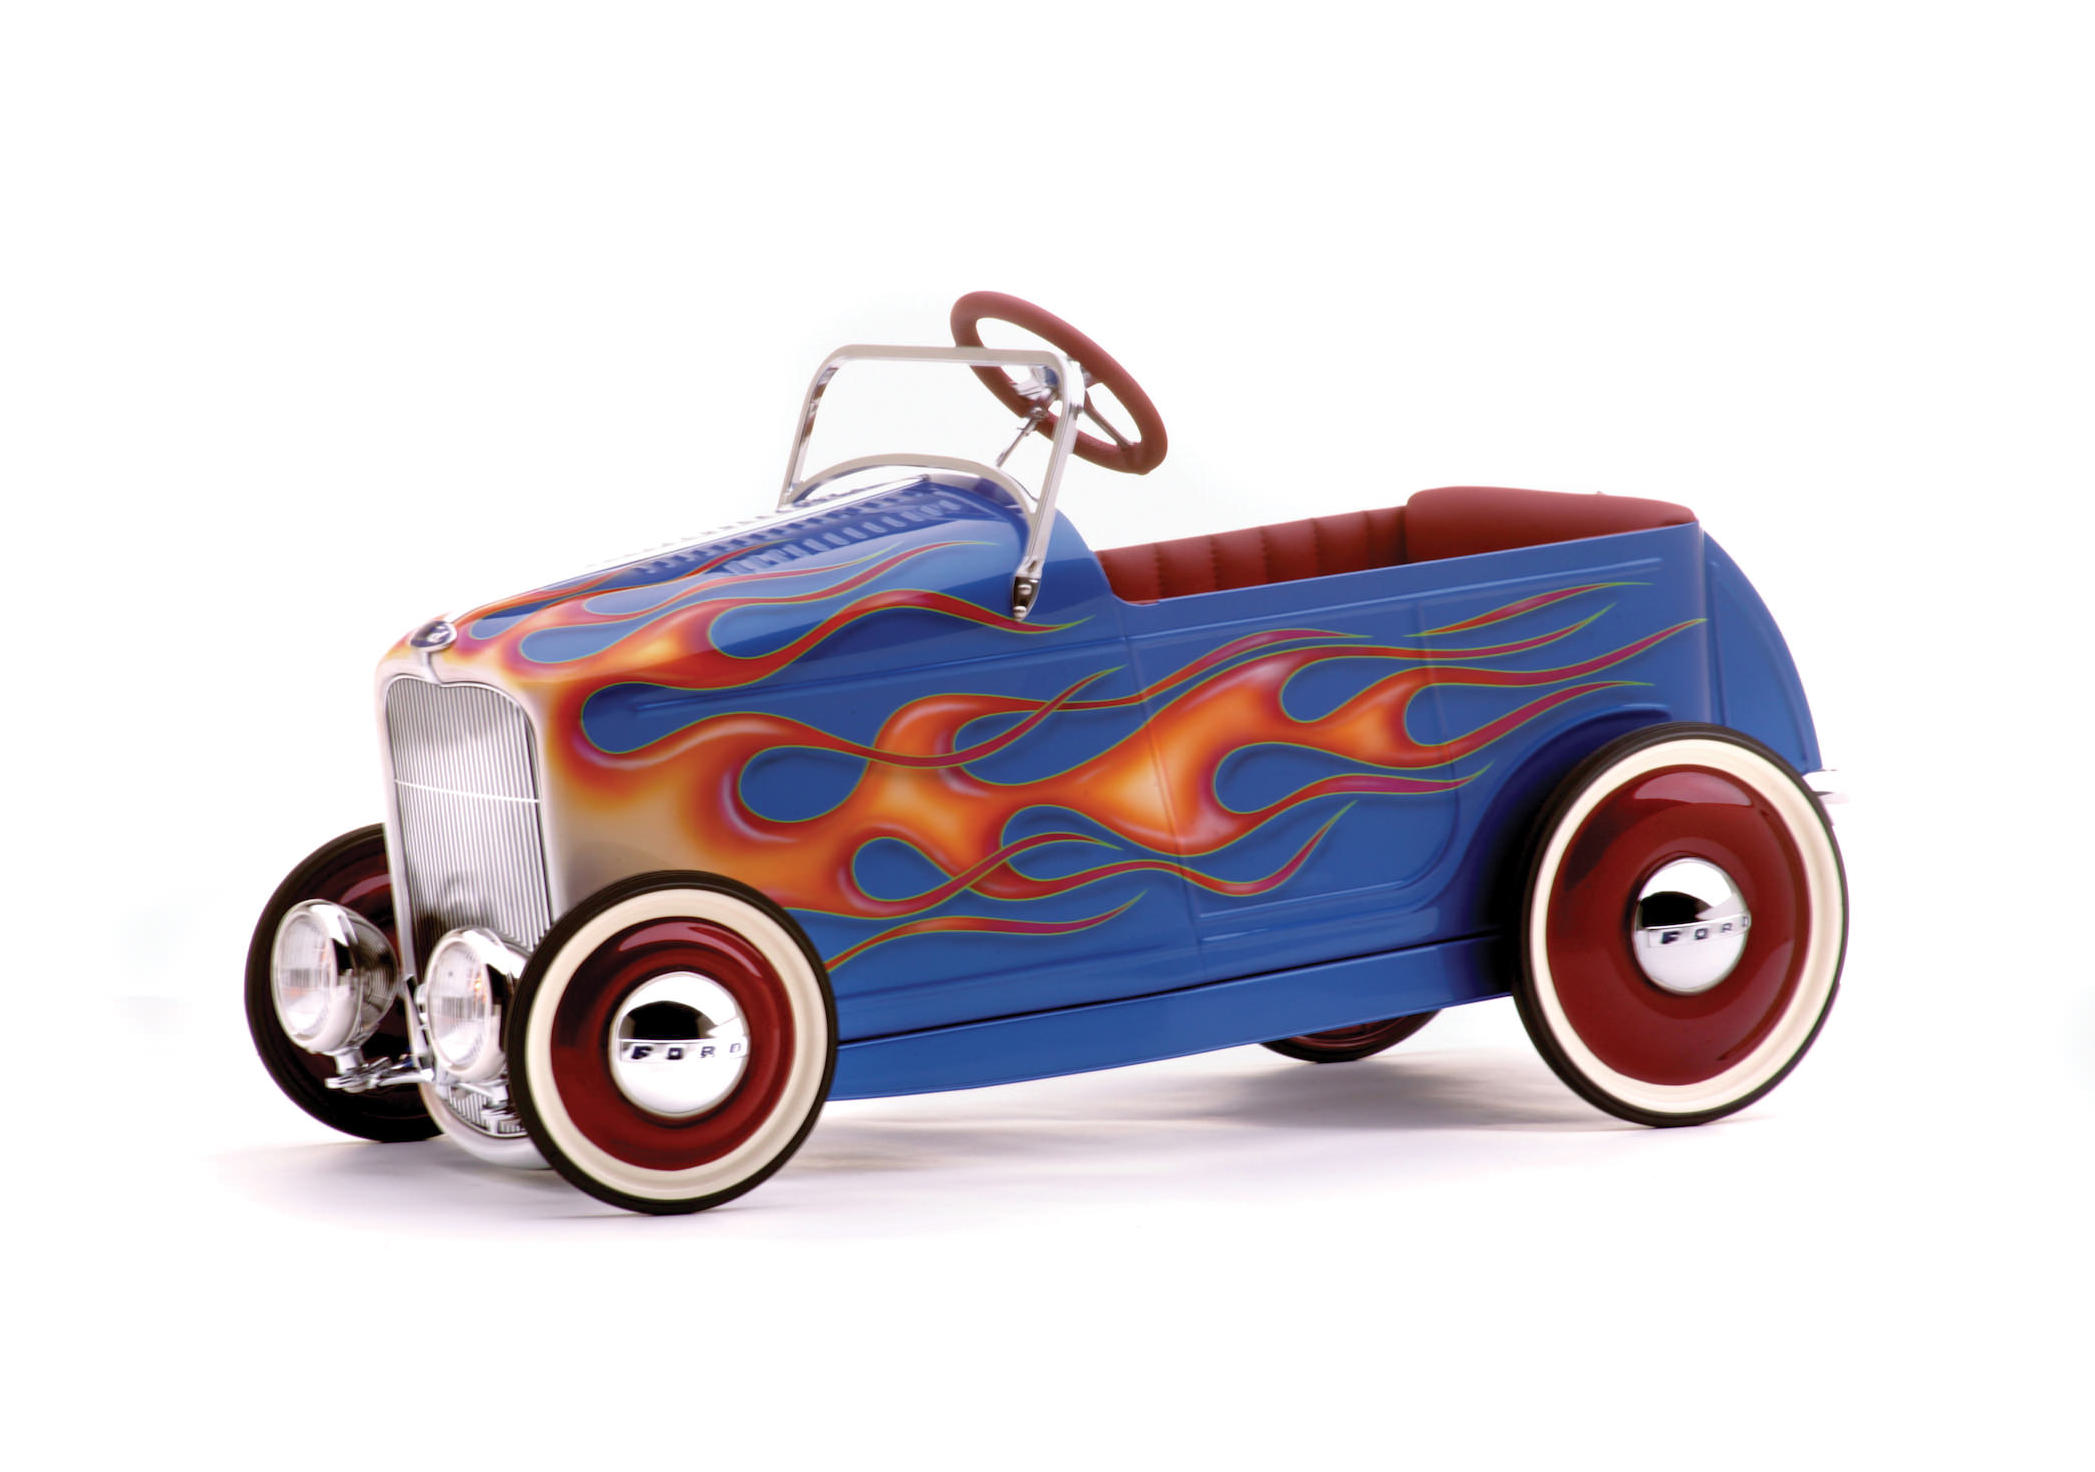 Kids' Pedal-Powered Hot Rod